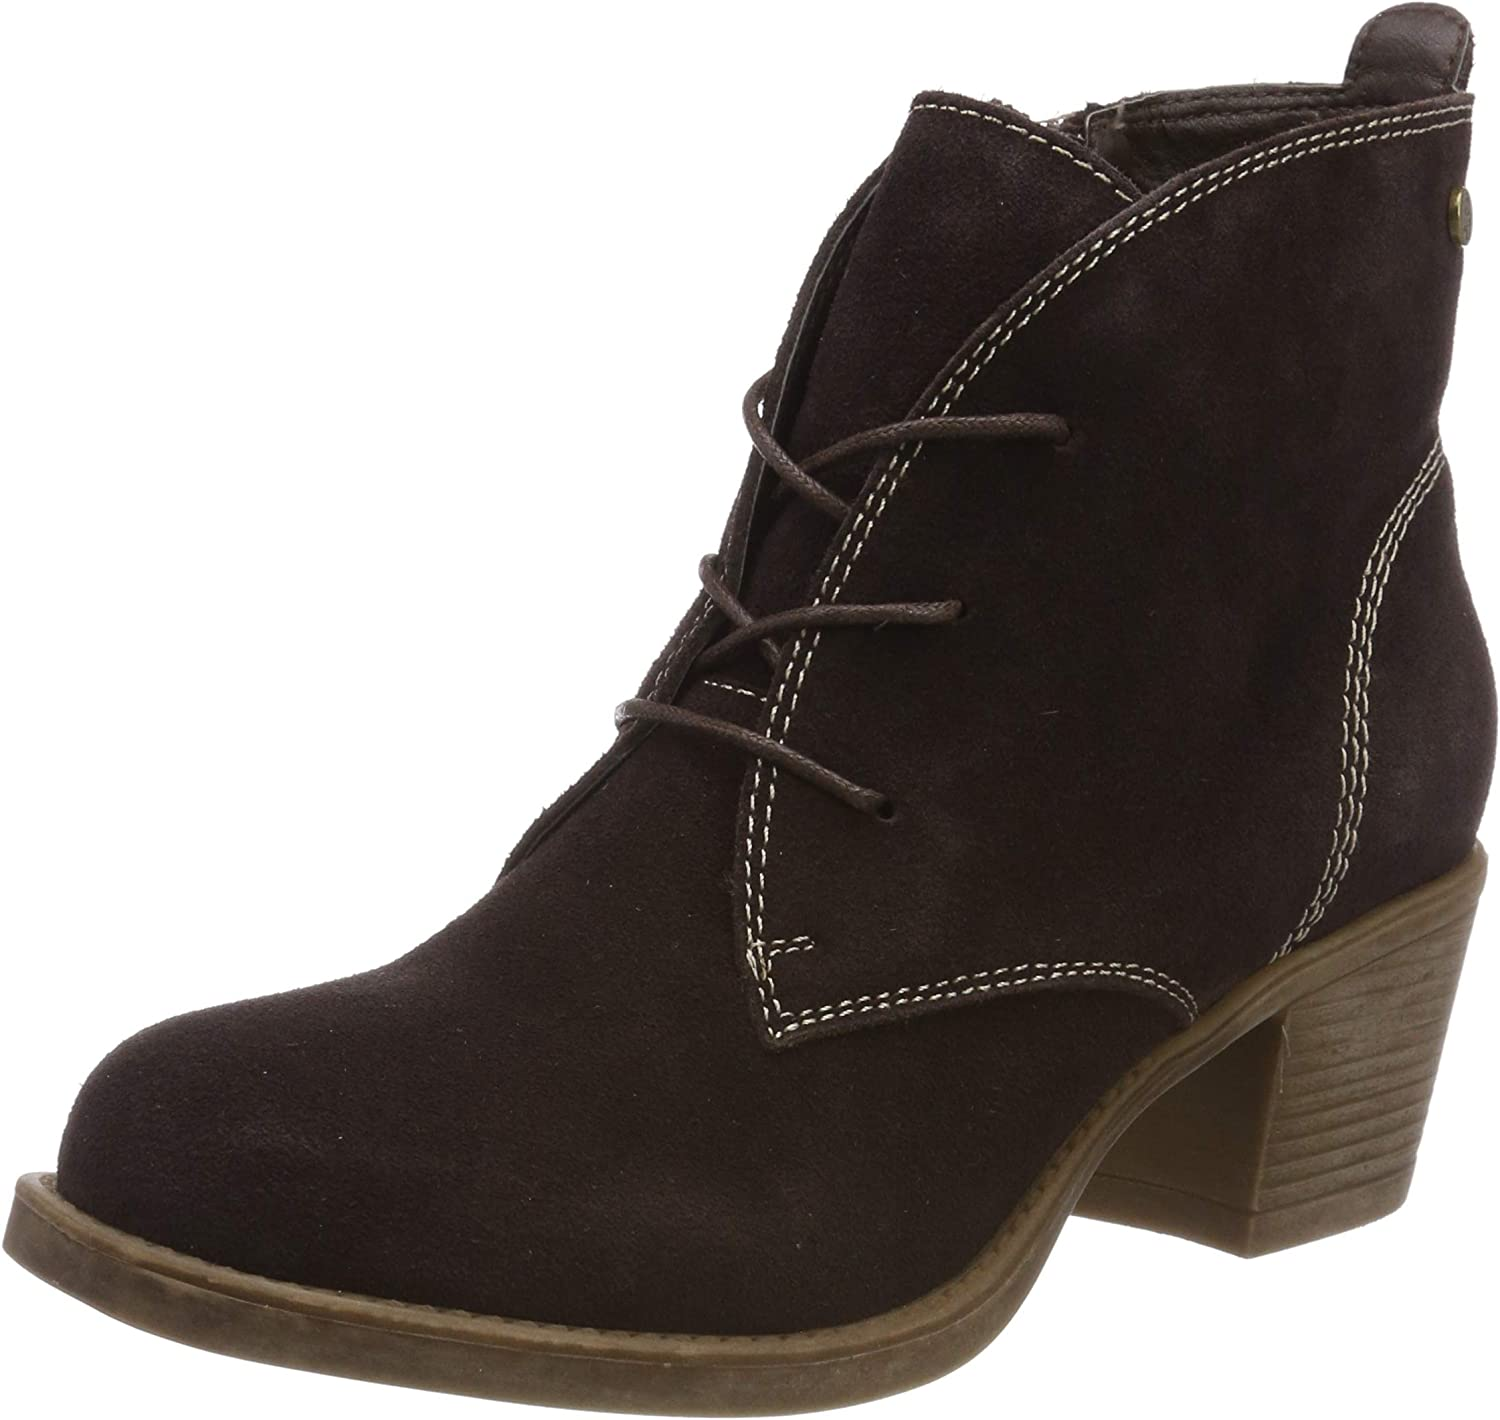 Hush Puppies Womens Moscow Laced Heel Boot Dark Brown Size UK 8 EU 42